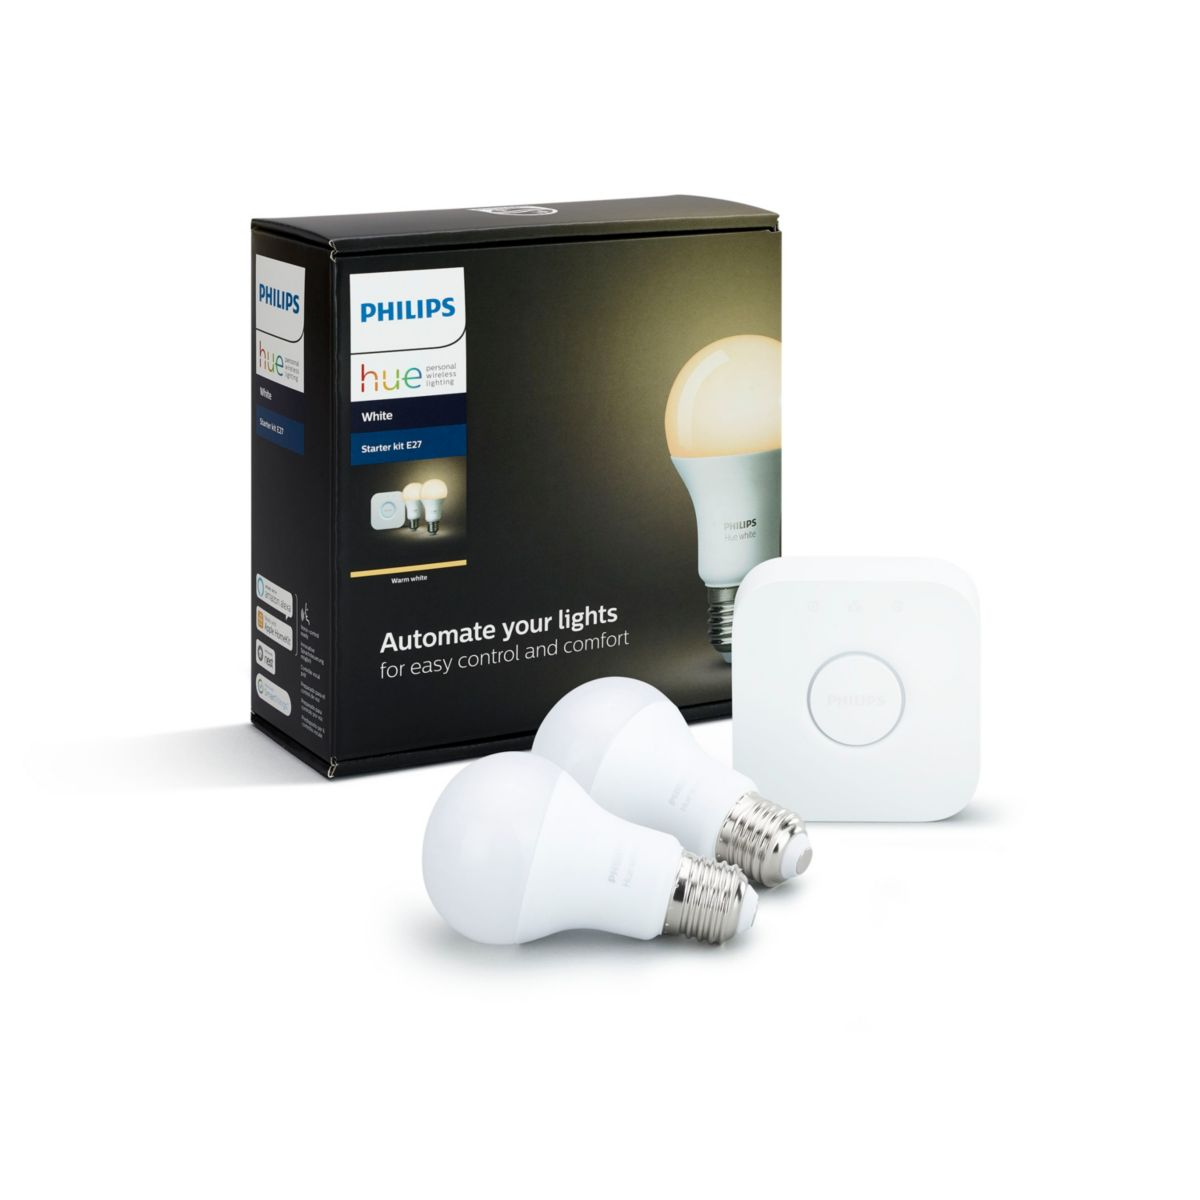 Philips Hue Starter Kit E27 Buy The Philips Hue White Starter Kit E27 8718696449592 Starter Kit E27